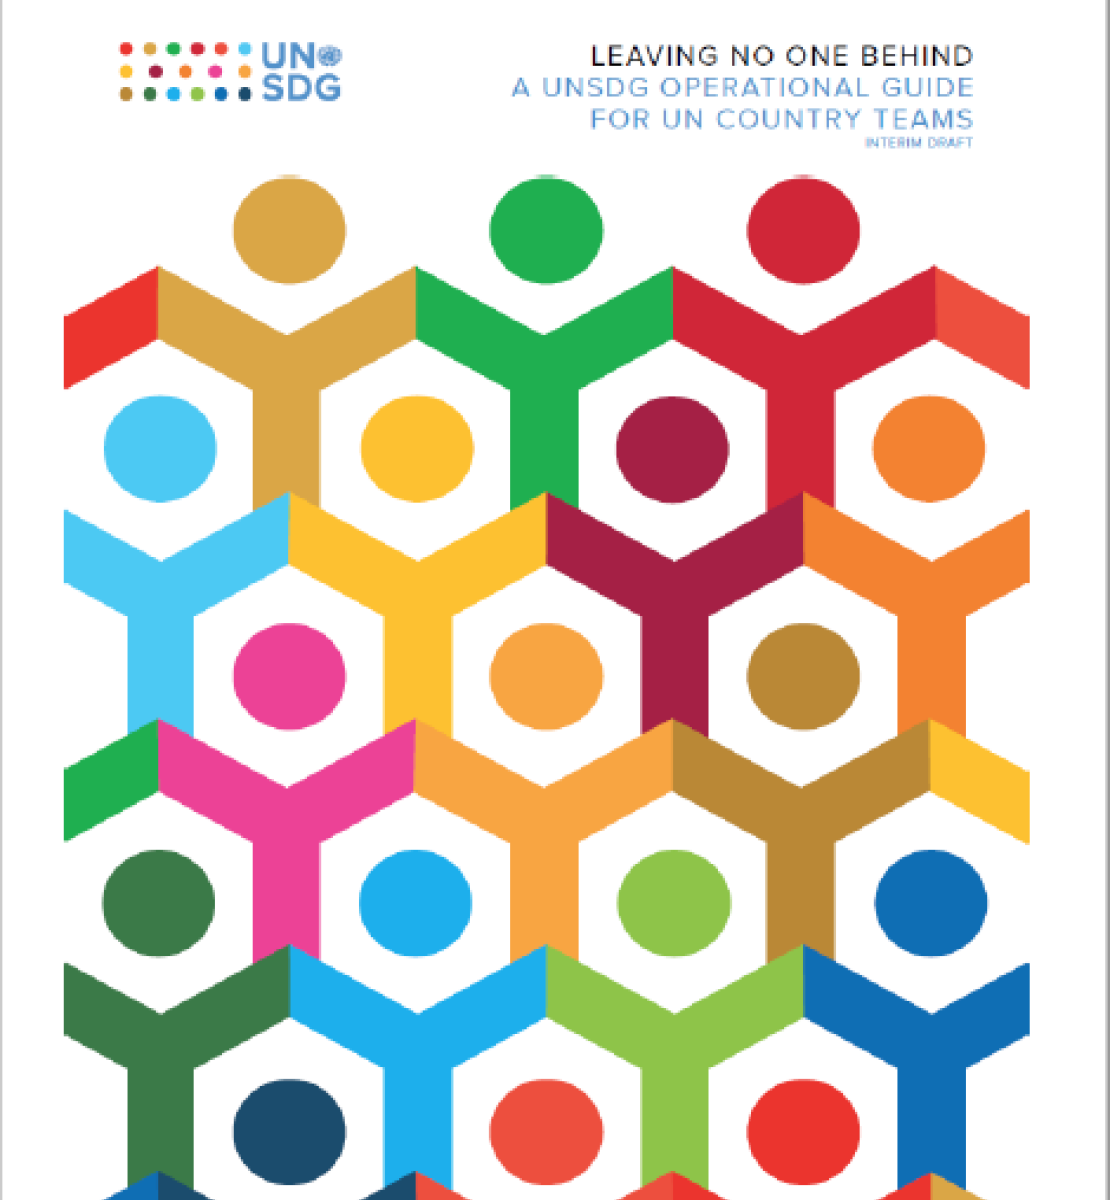 Leaving No One Behind: A UNSDG Operational Guide for UN Country Teams